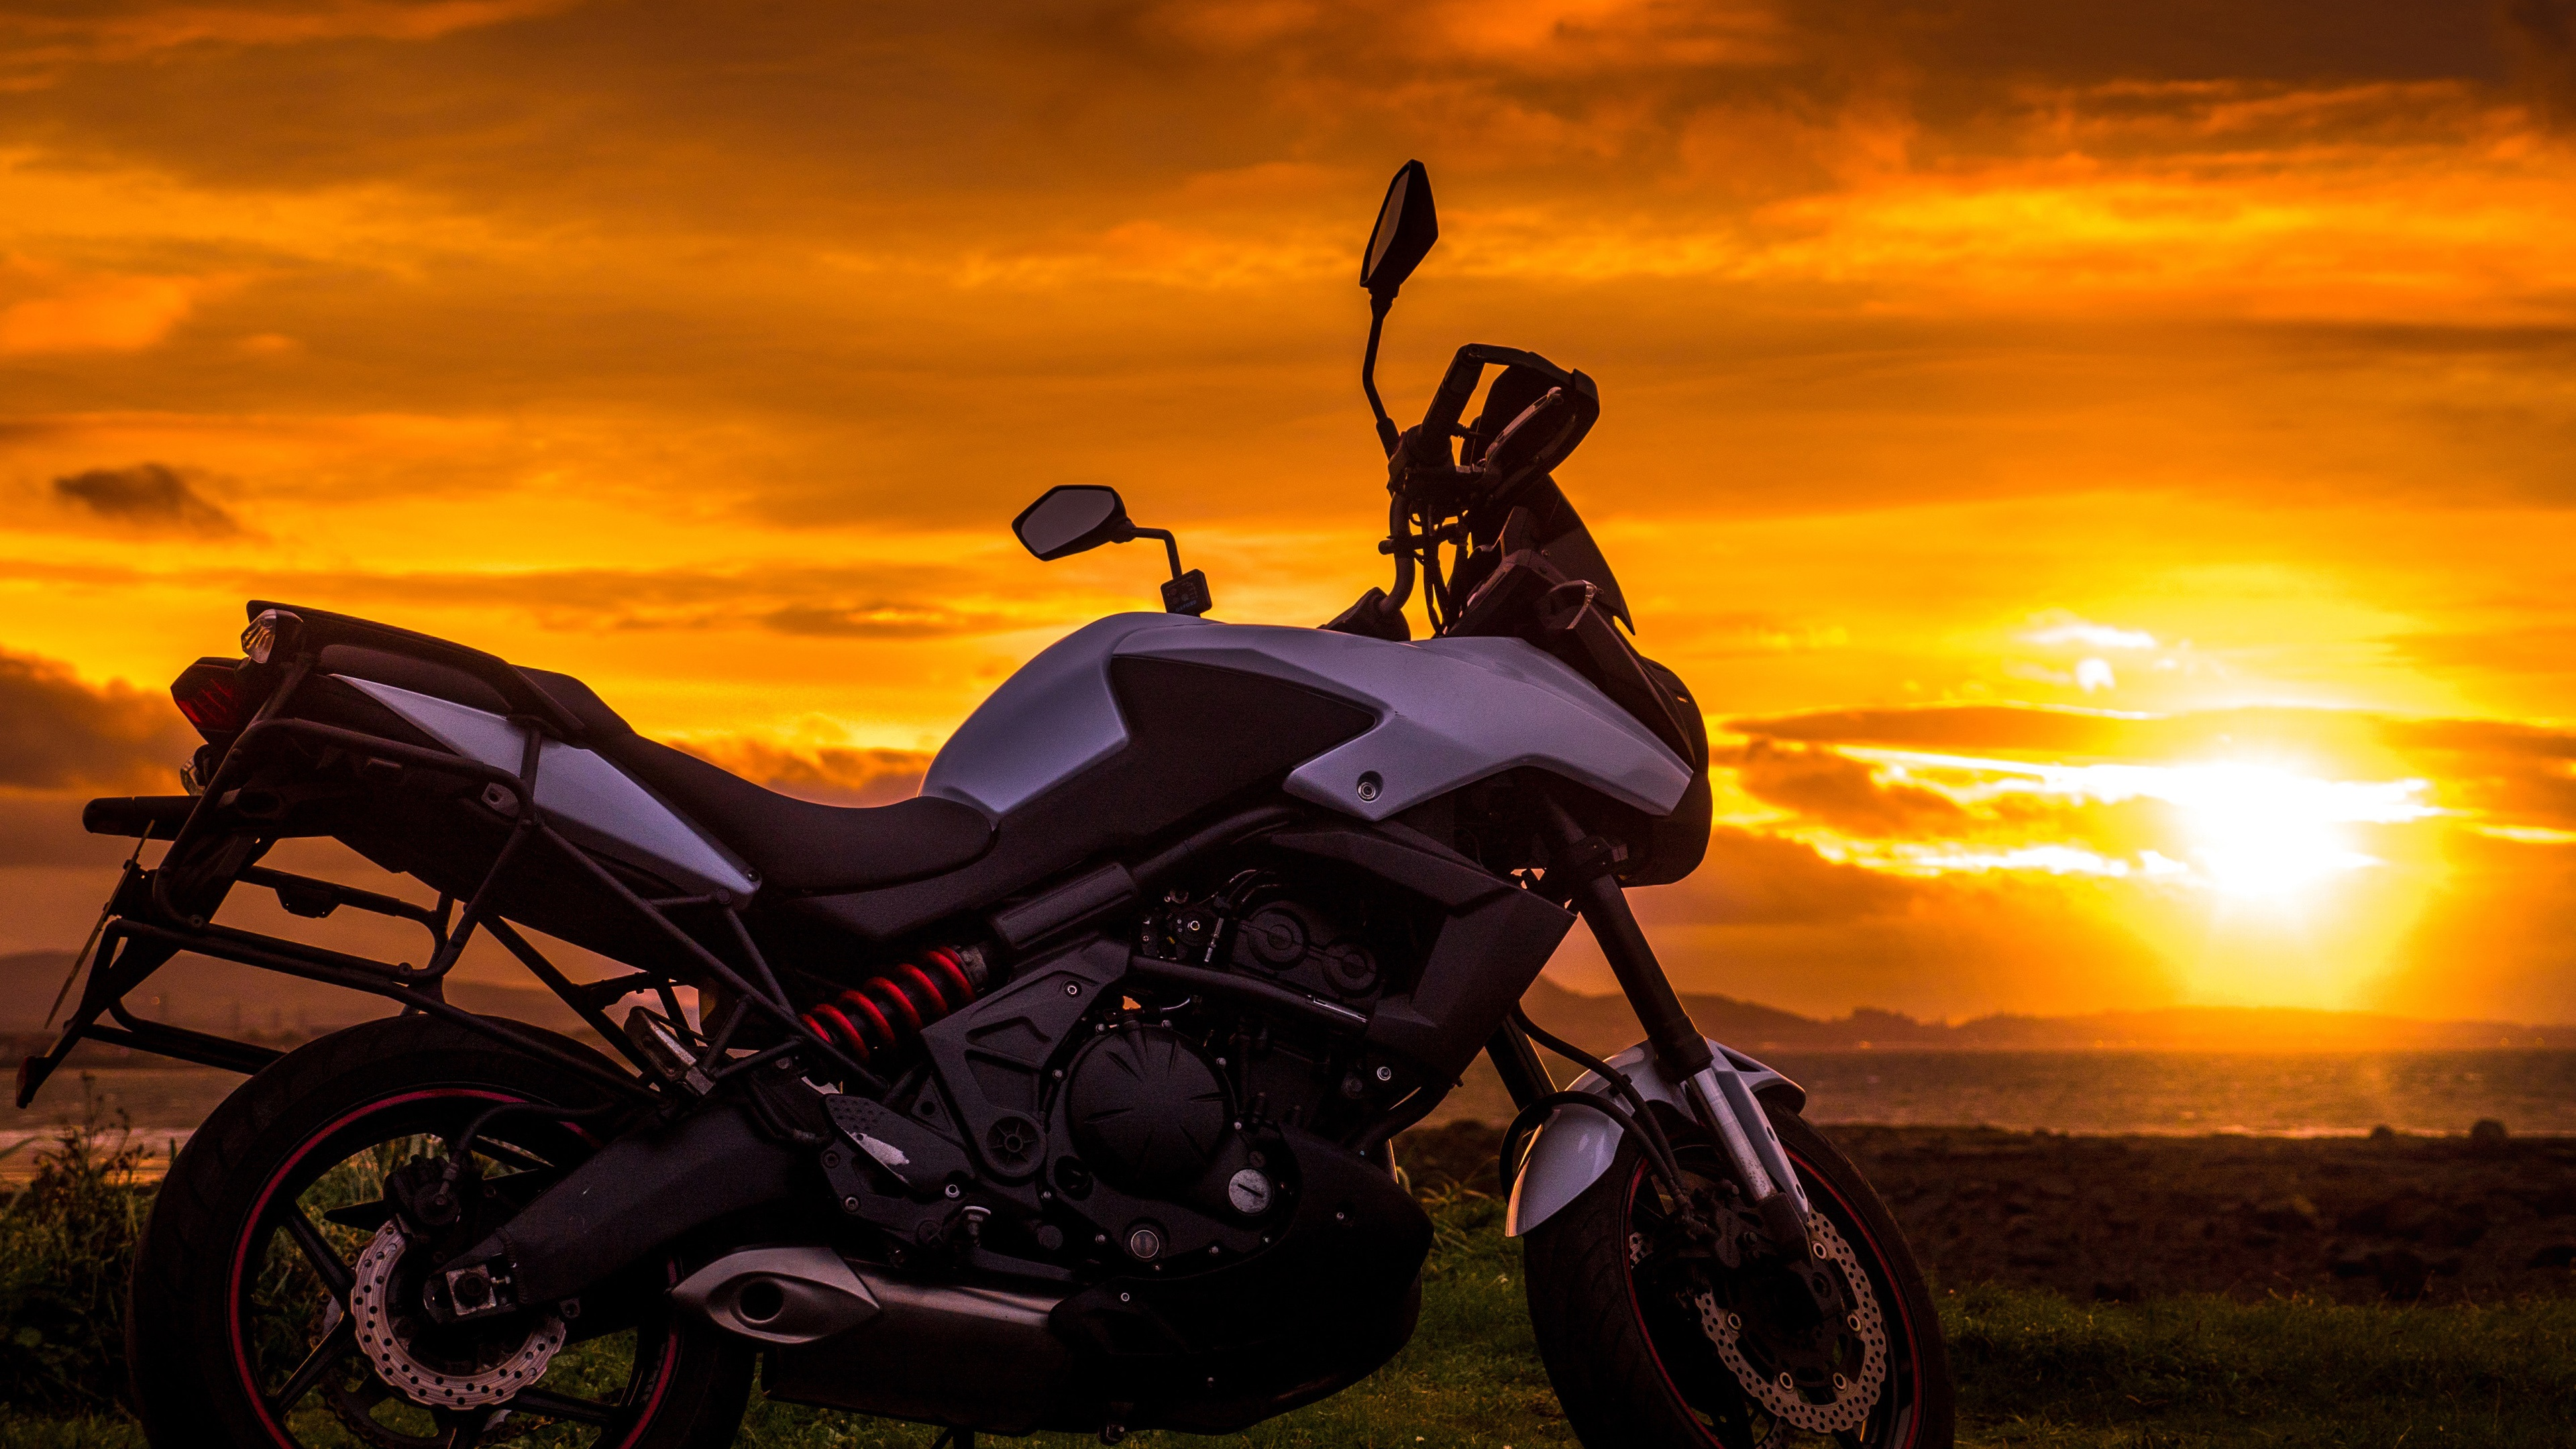 Wallpaper Motorcycle At Sunset Clouds 3840x2160 Uhd 4k